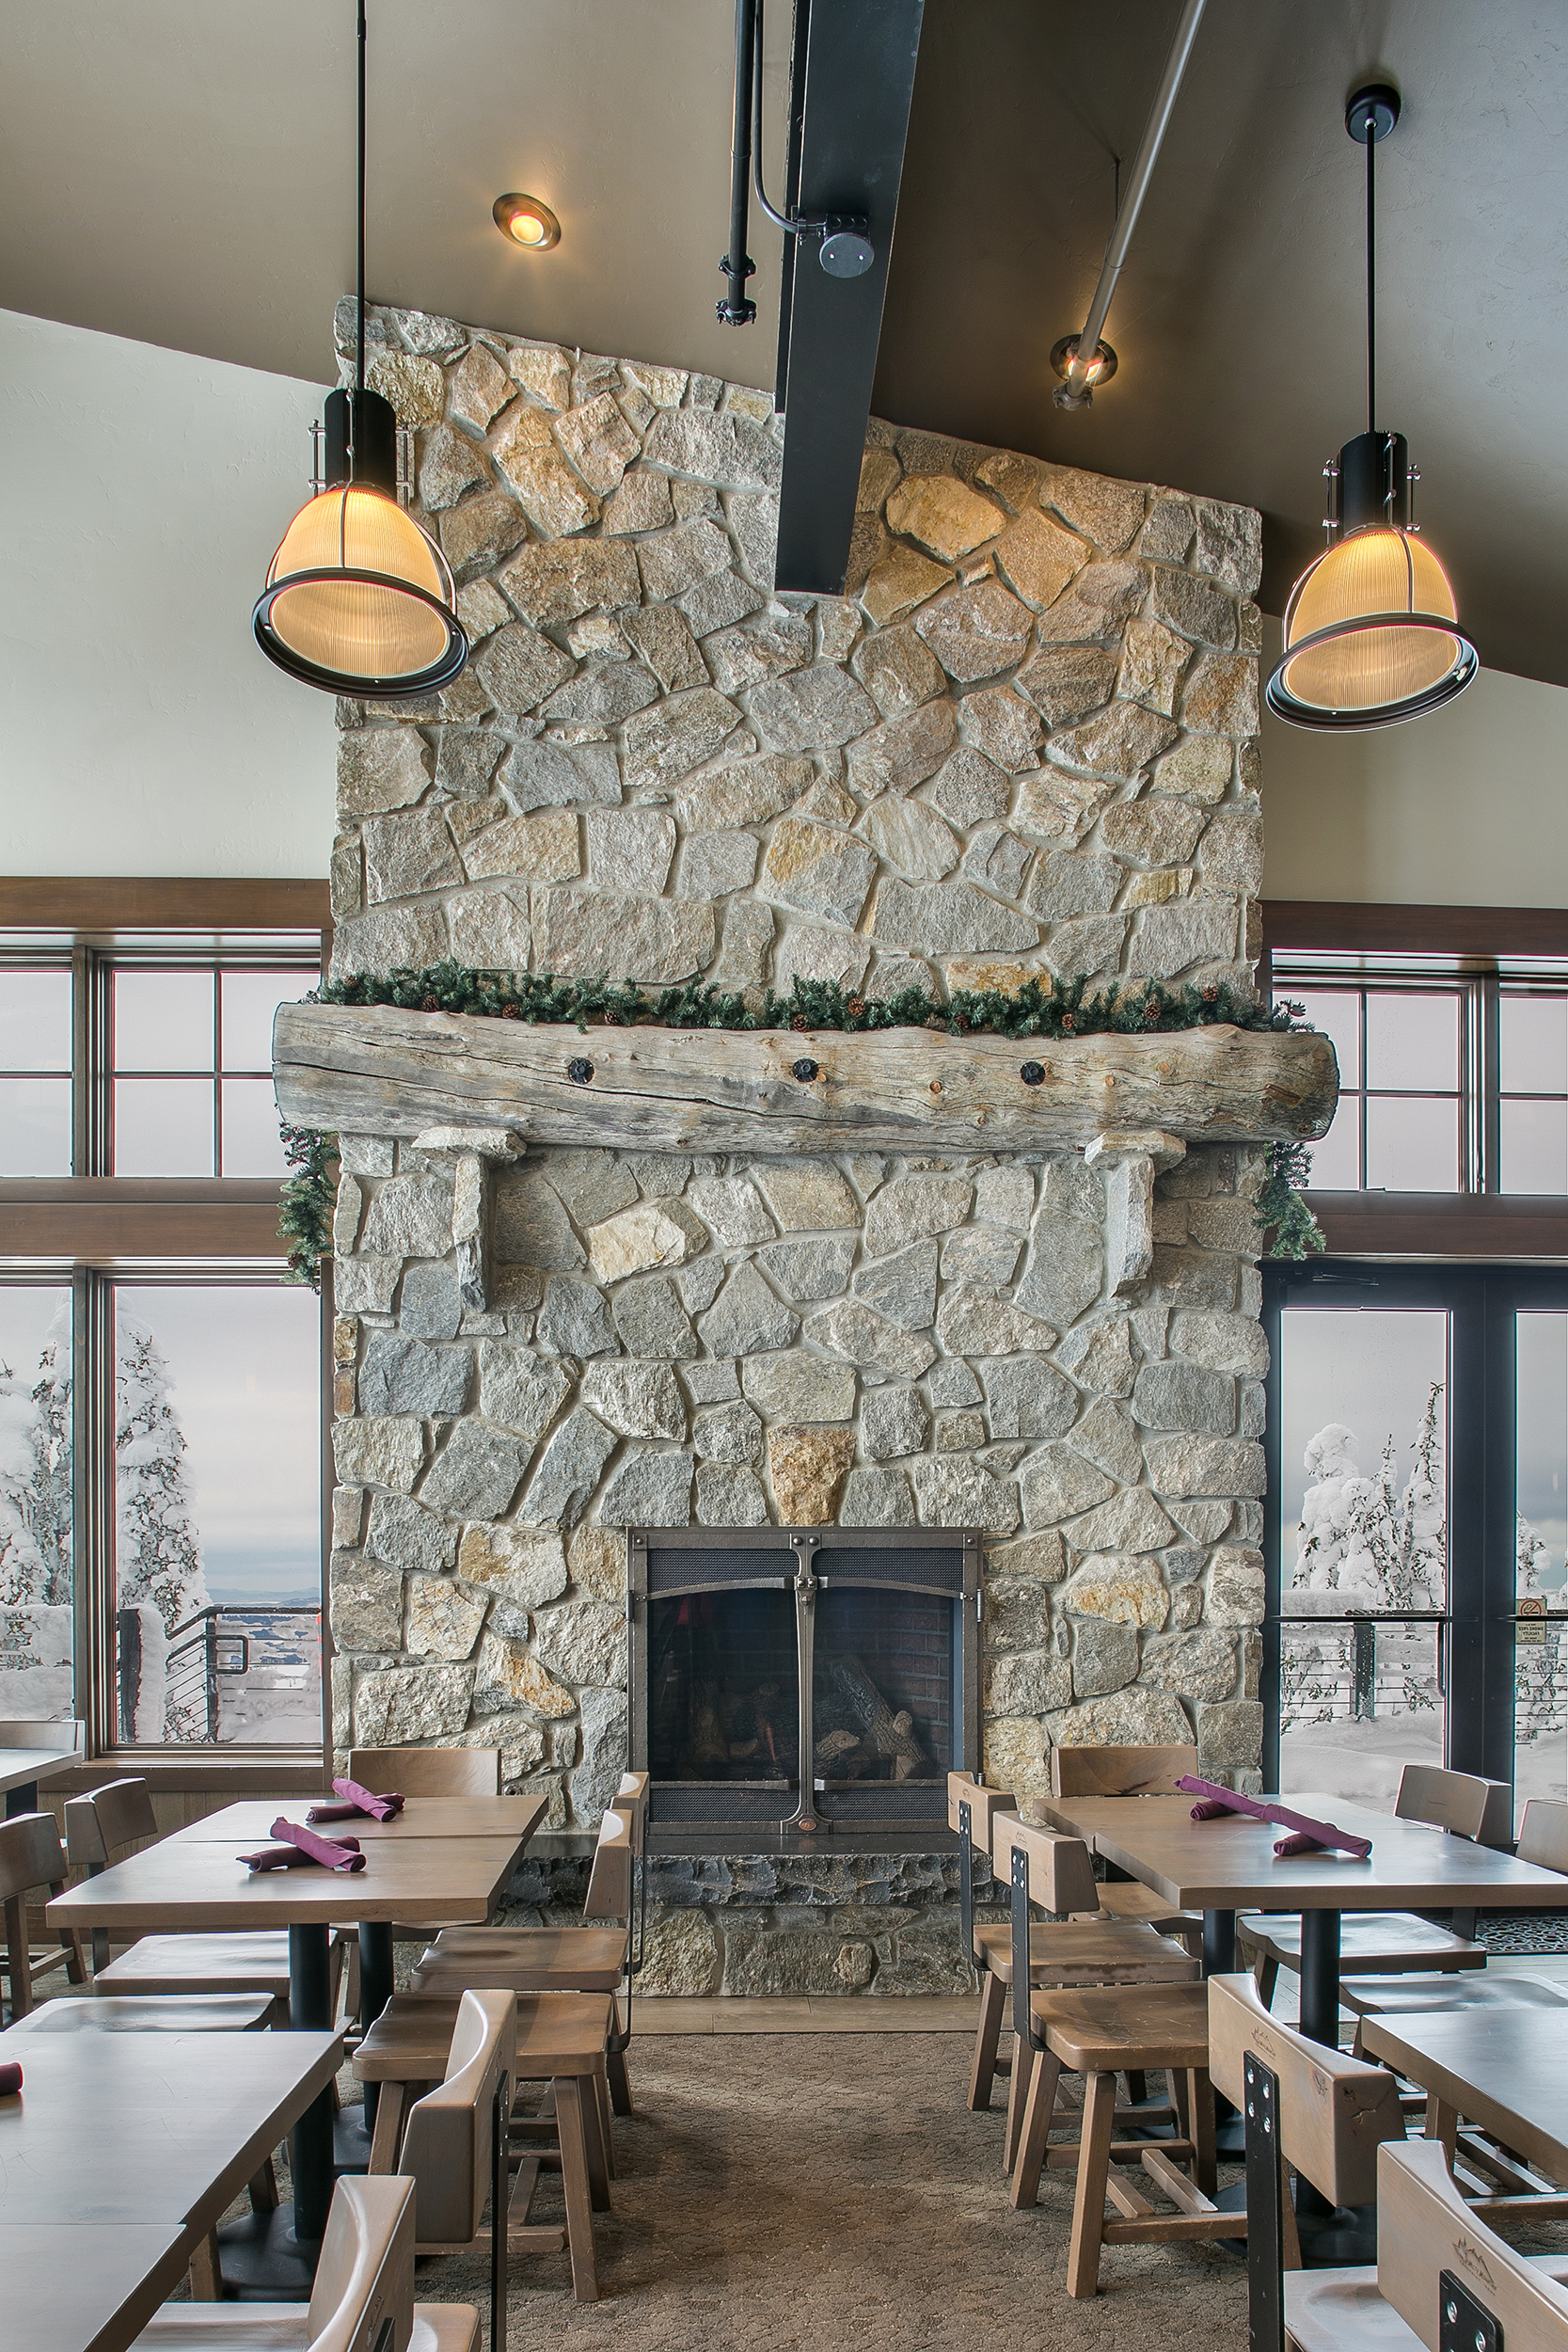 Skyhouse-interior-steel-beams-Schweitzer-Lodge-fireplace.jpg